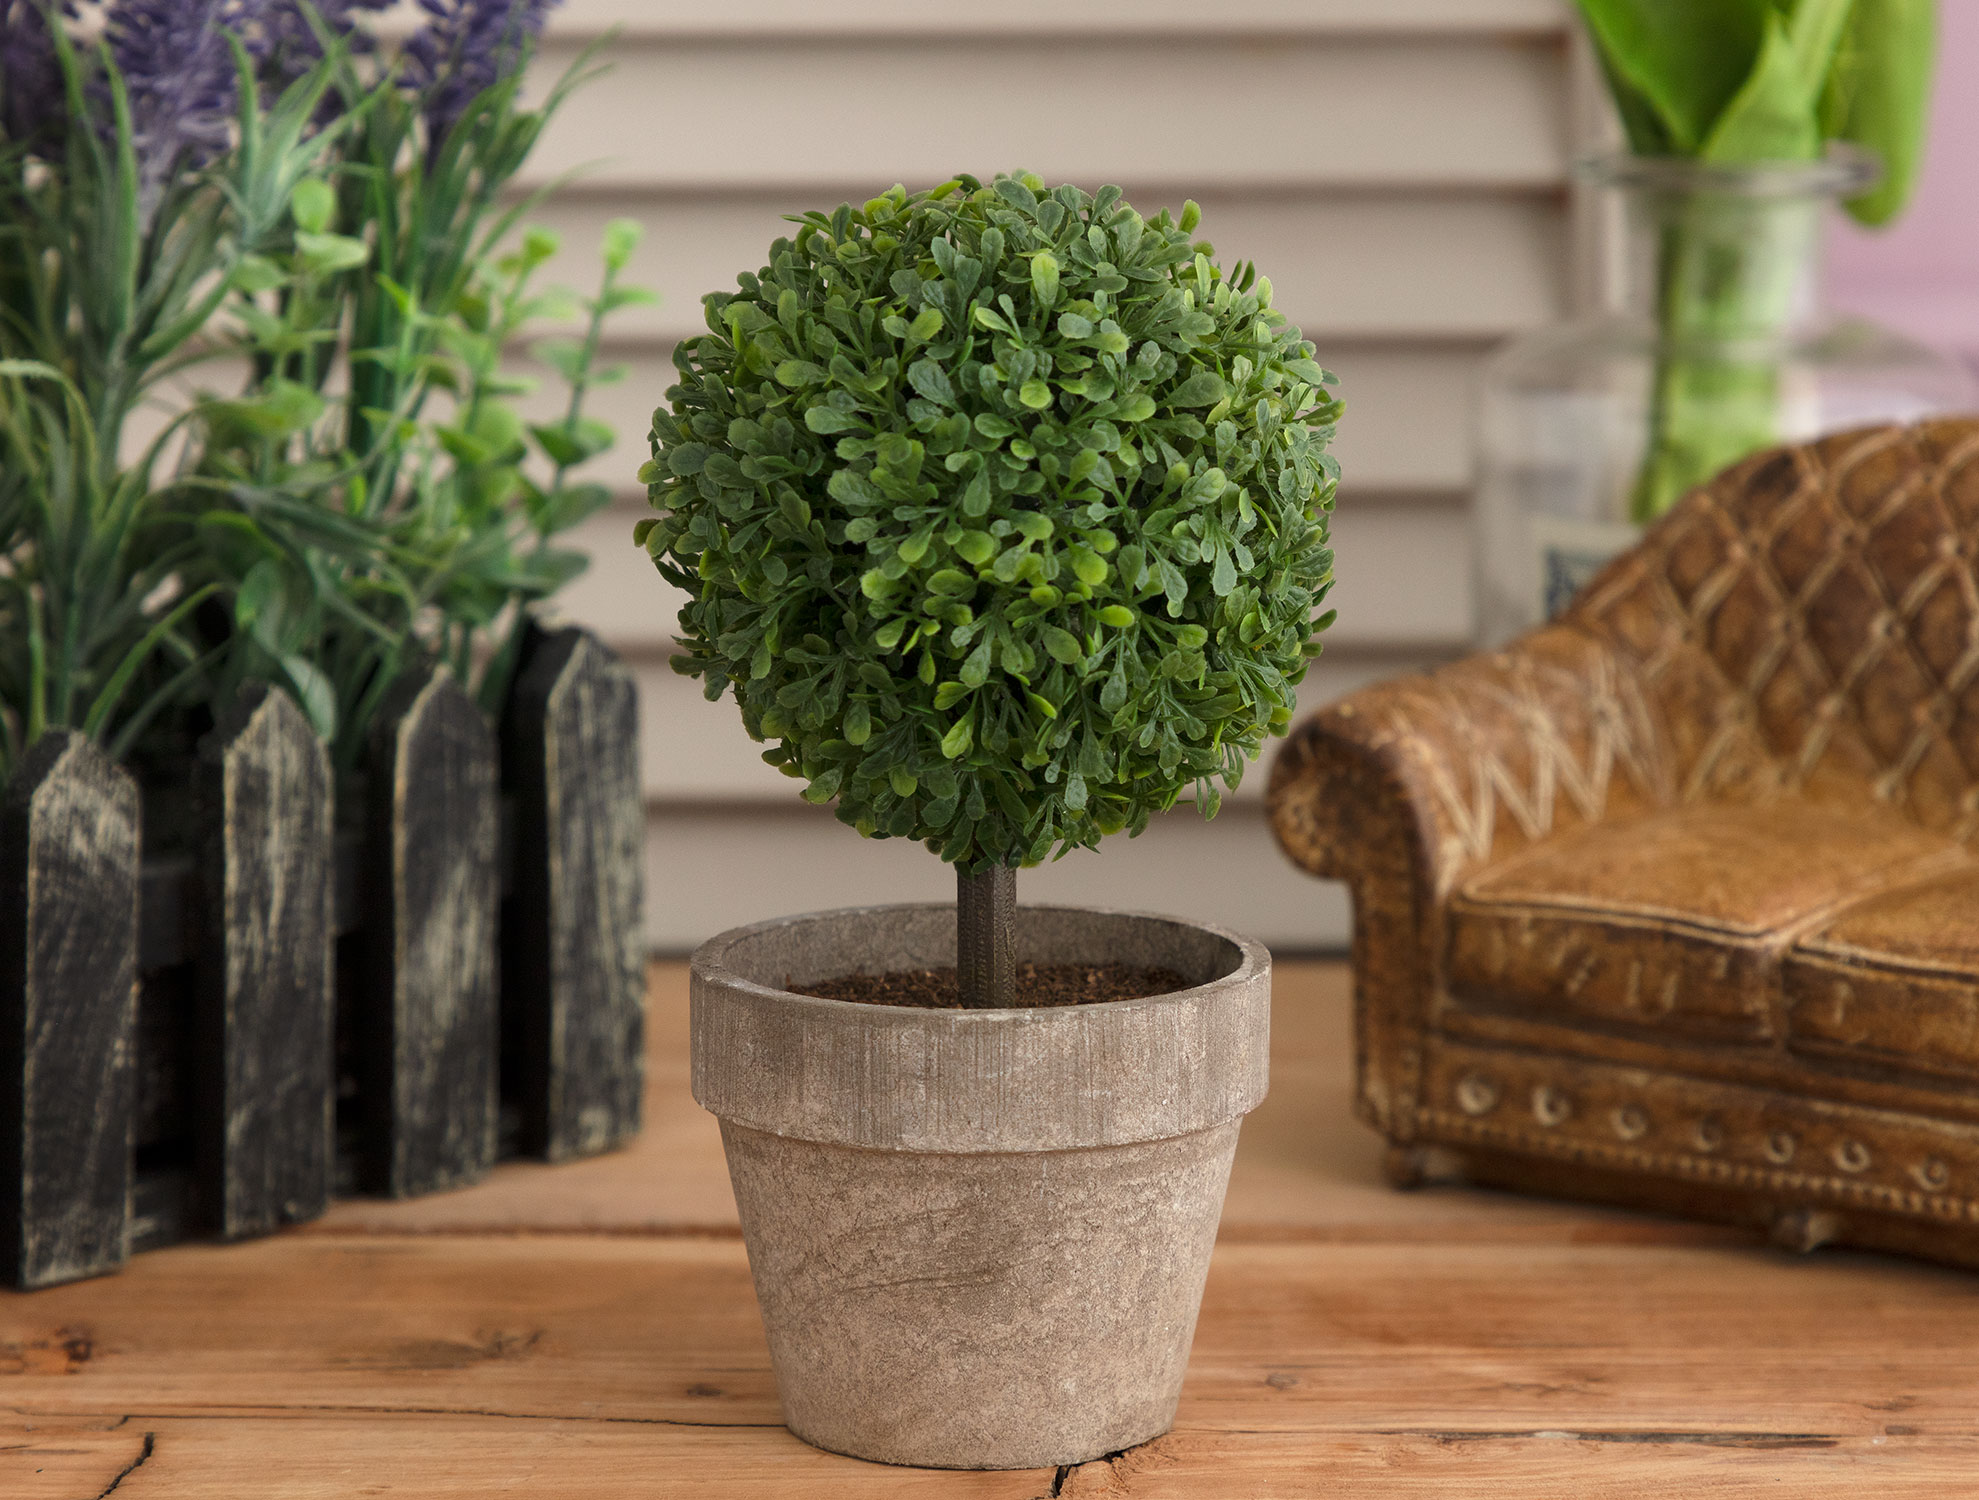 Pot with Plant